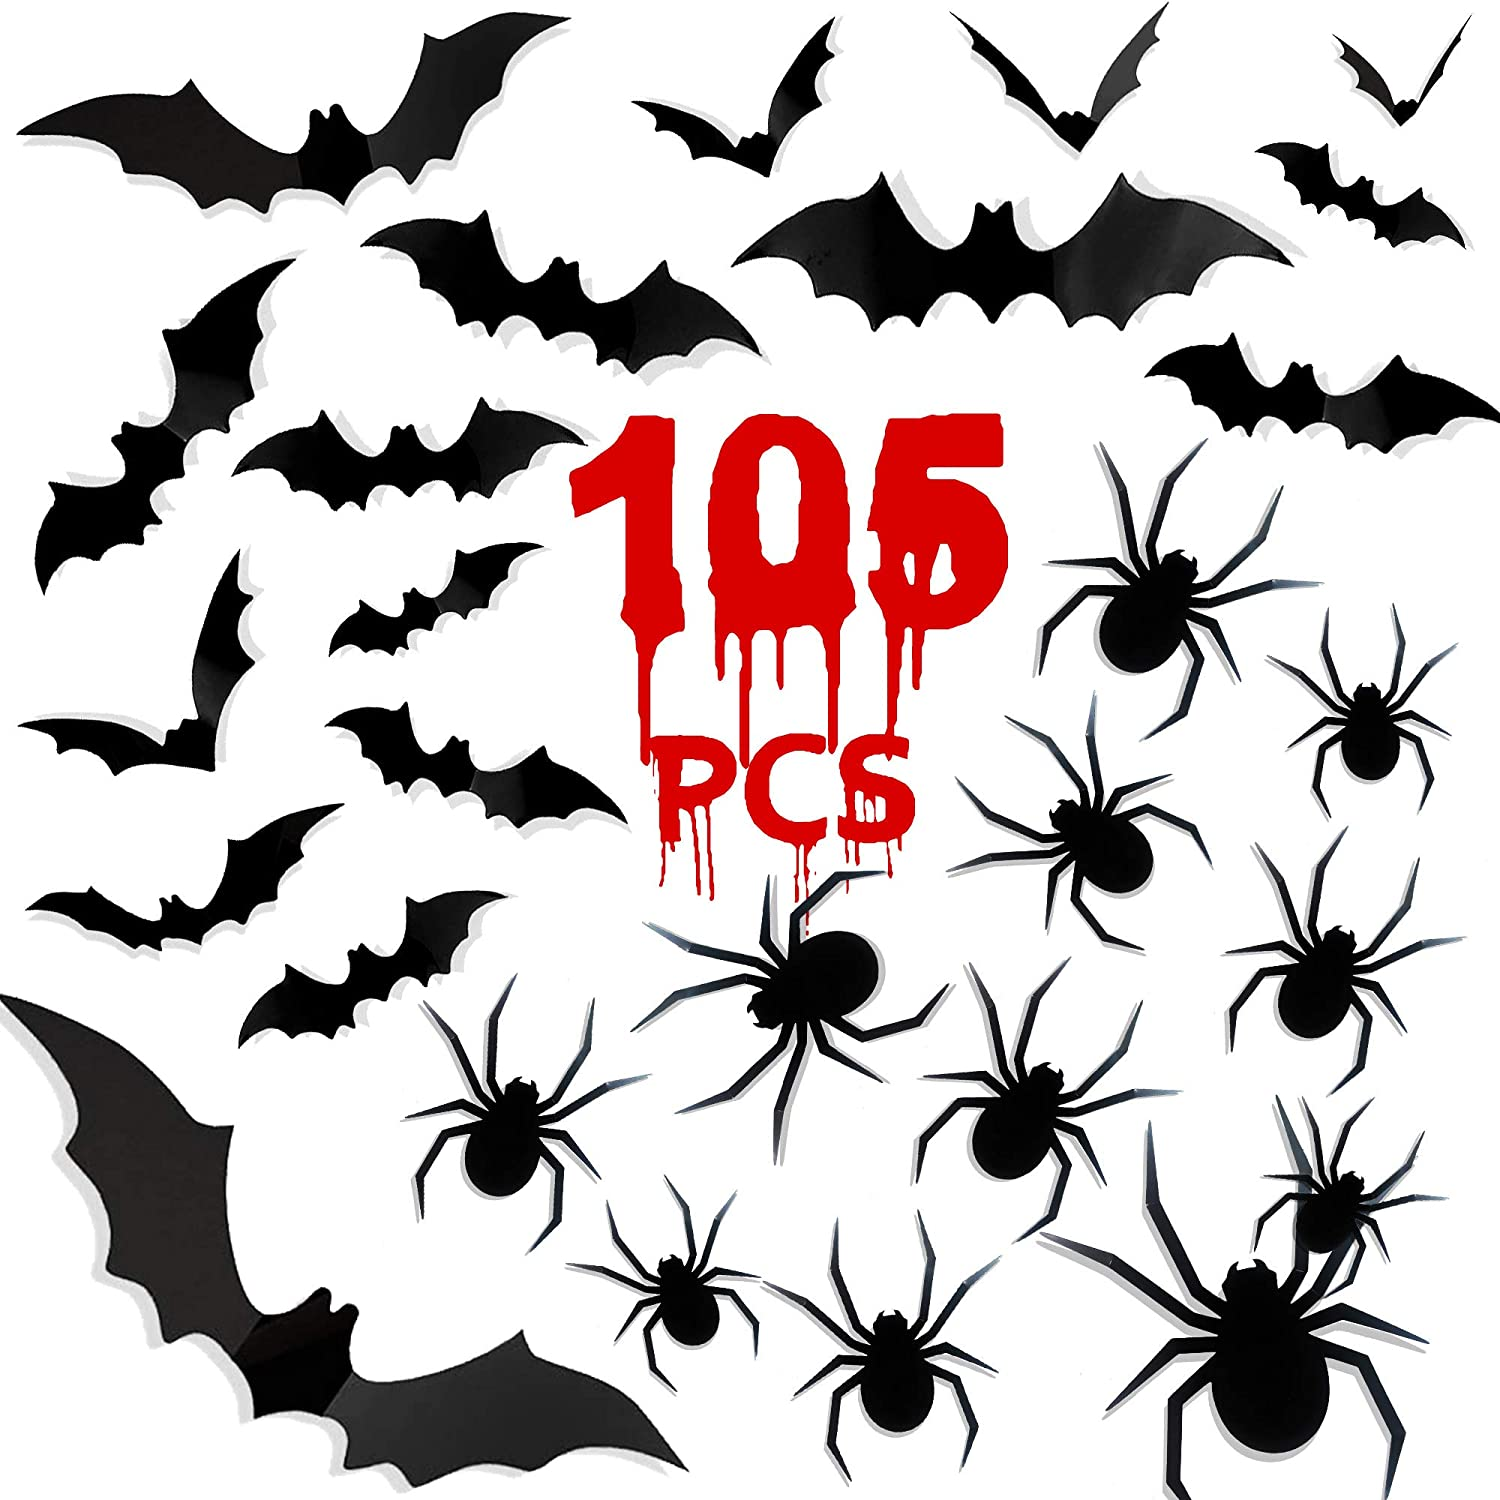 Funnlot Halloween Bats Spiders 105PCS Bats Decor with Spiders Bats Halloween Decorations Halloween 3D Bats Spiders Decorations Bat Wall Decor Plastic Bats Spiders for Halloween Office Decorations Wall